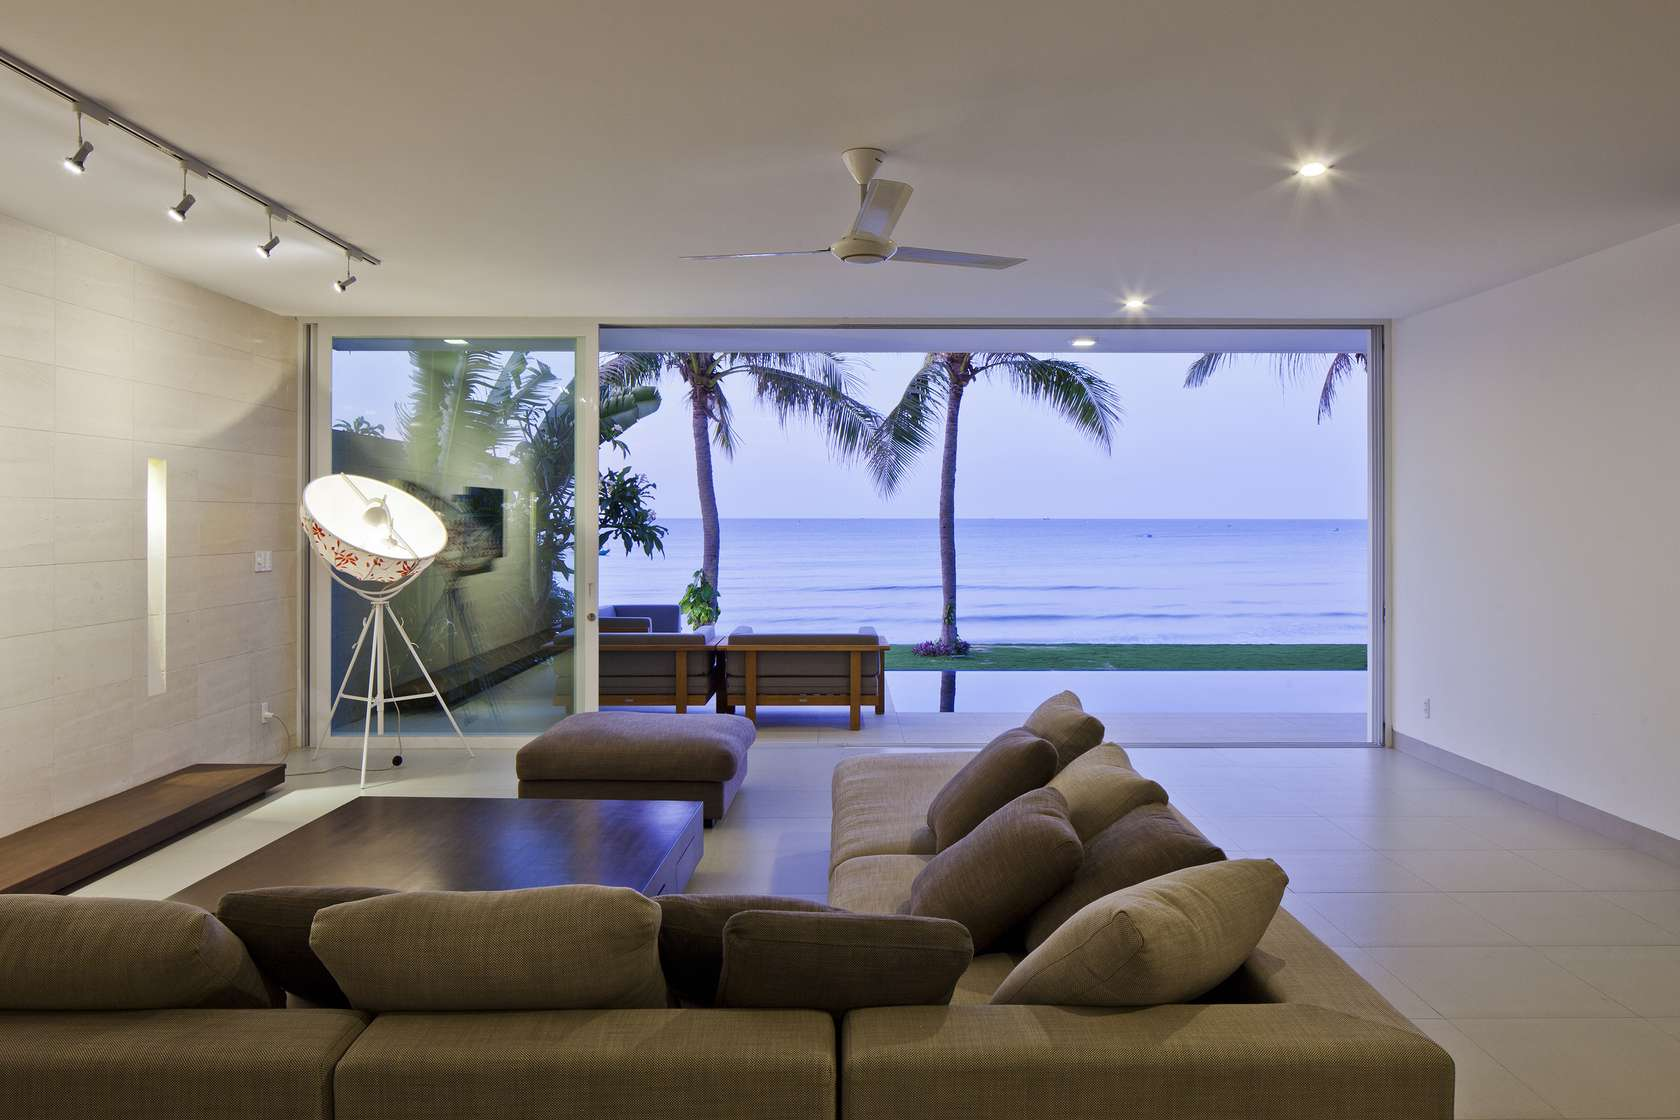 Oceanique-Villas-Vietnam-living-room-views